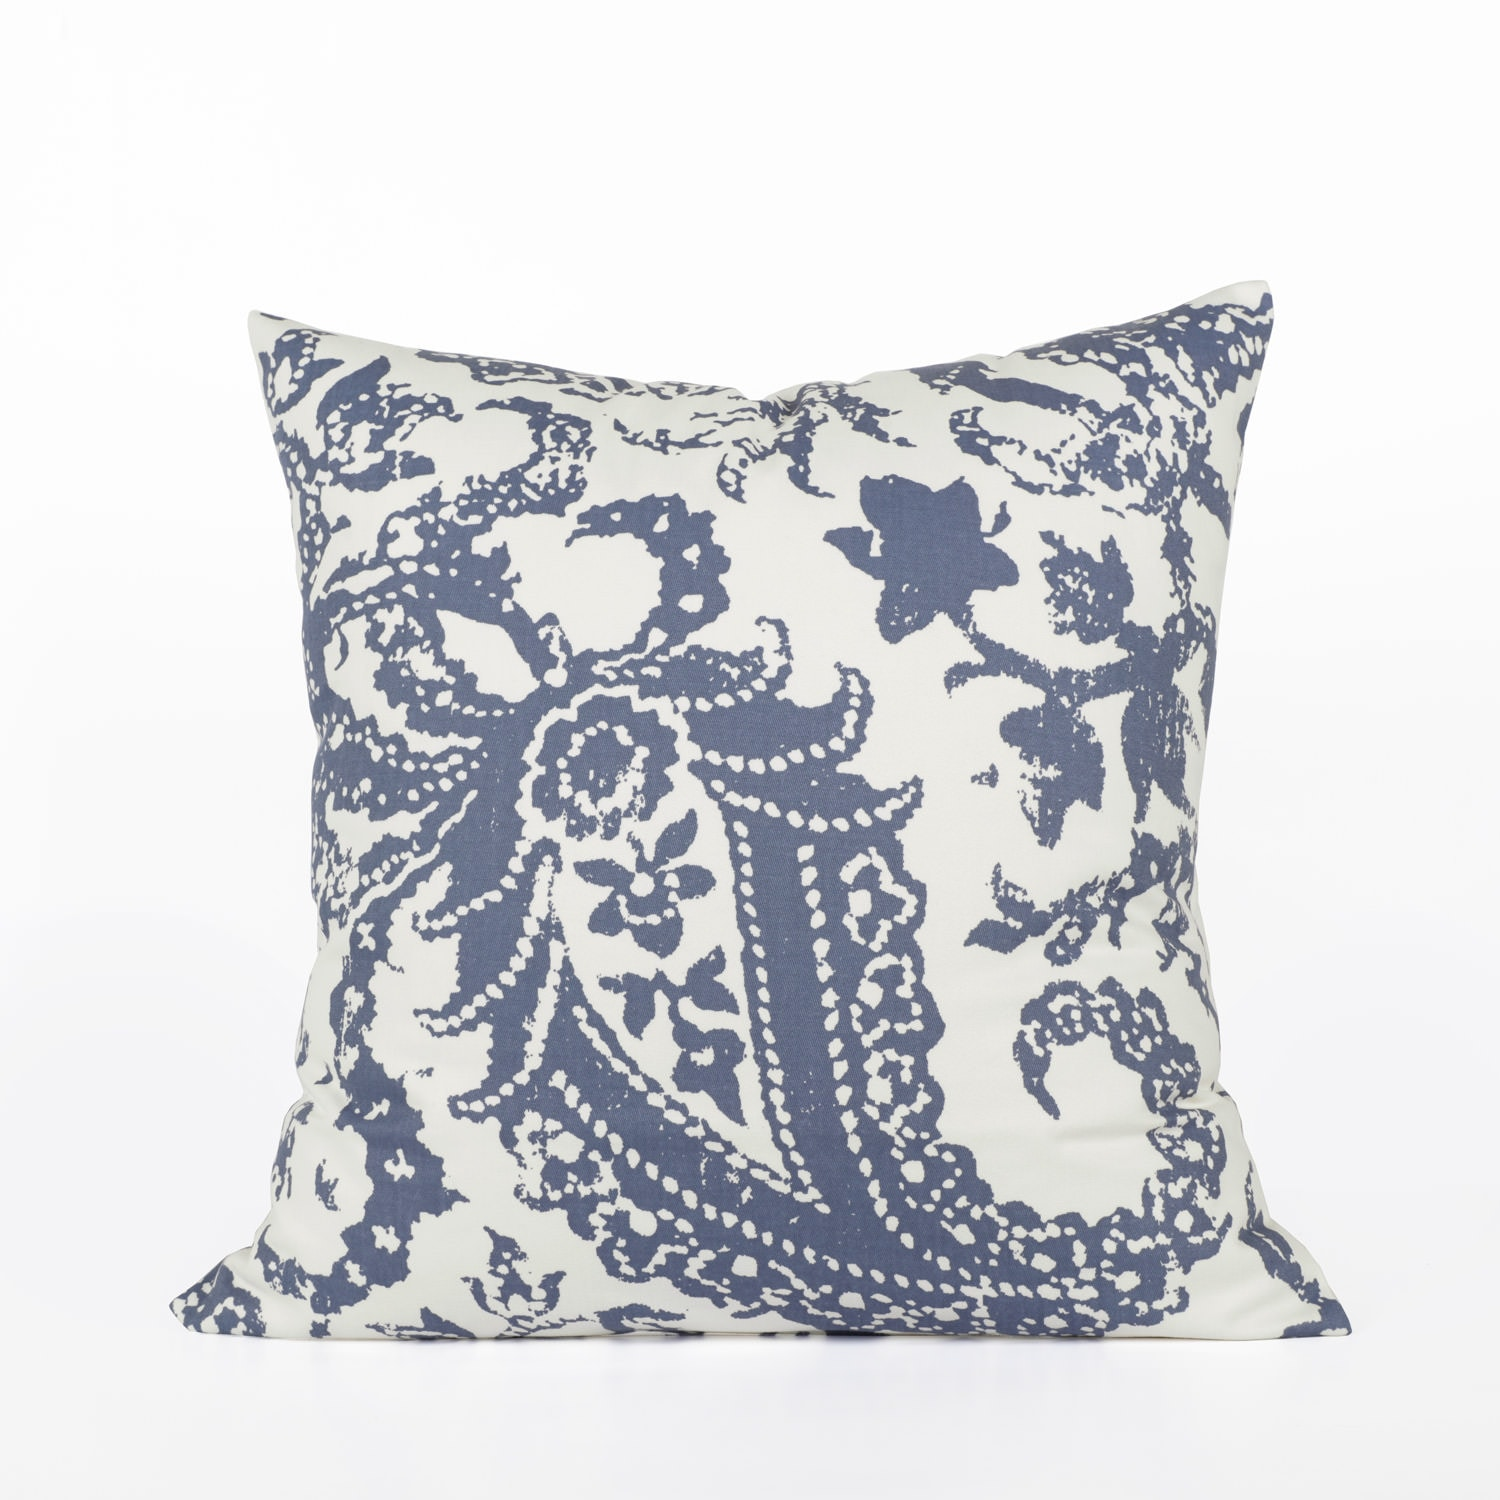 Edina Blue Printed Cotton Cushion Covers - PAIR